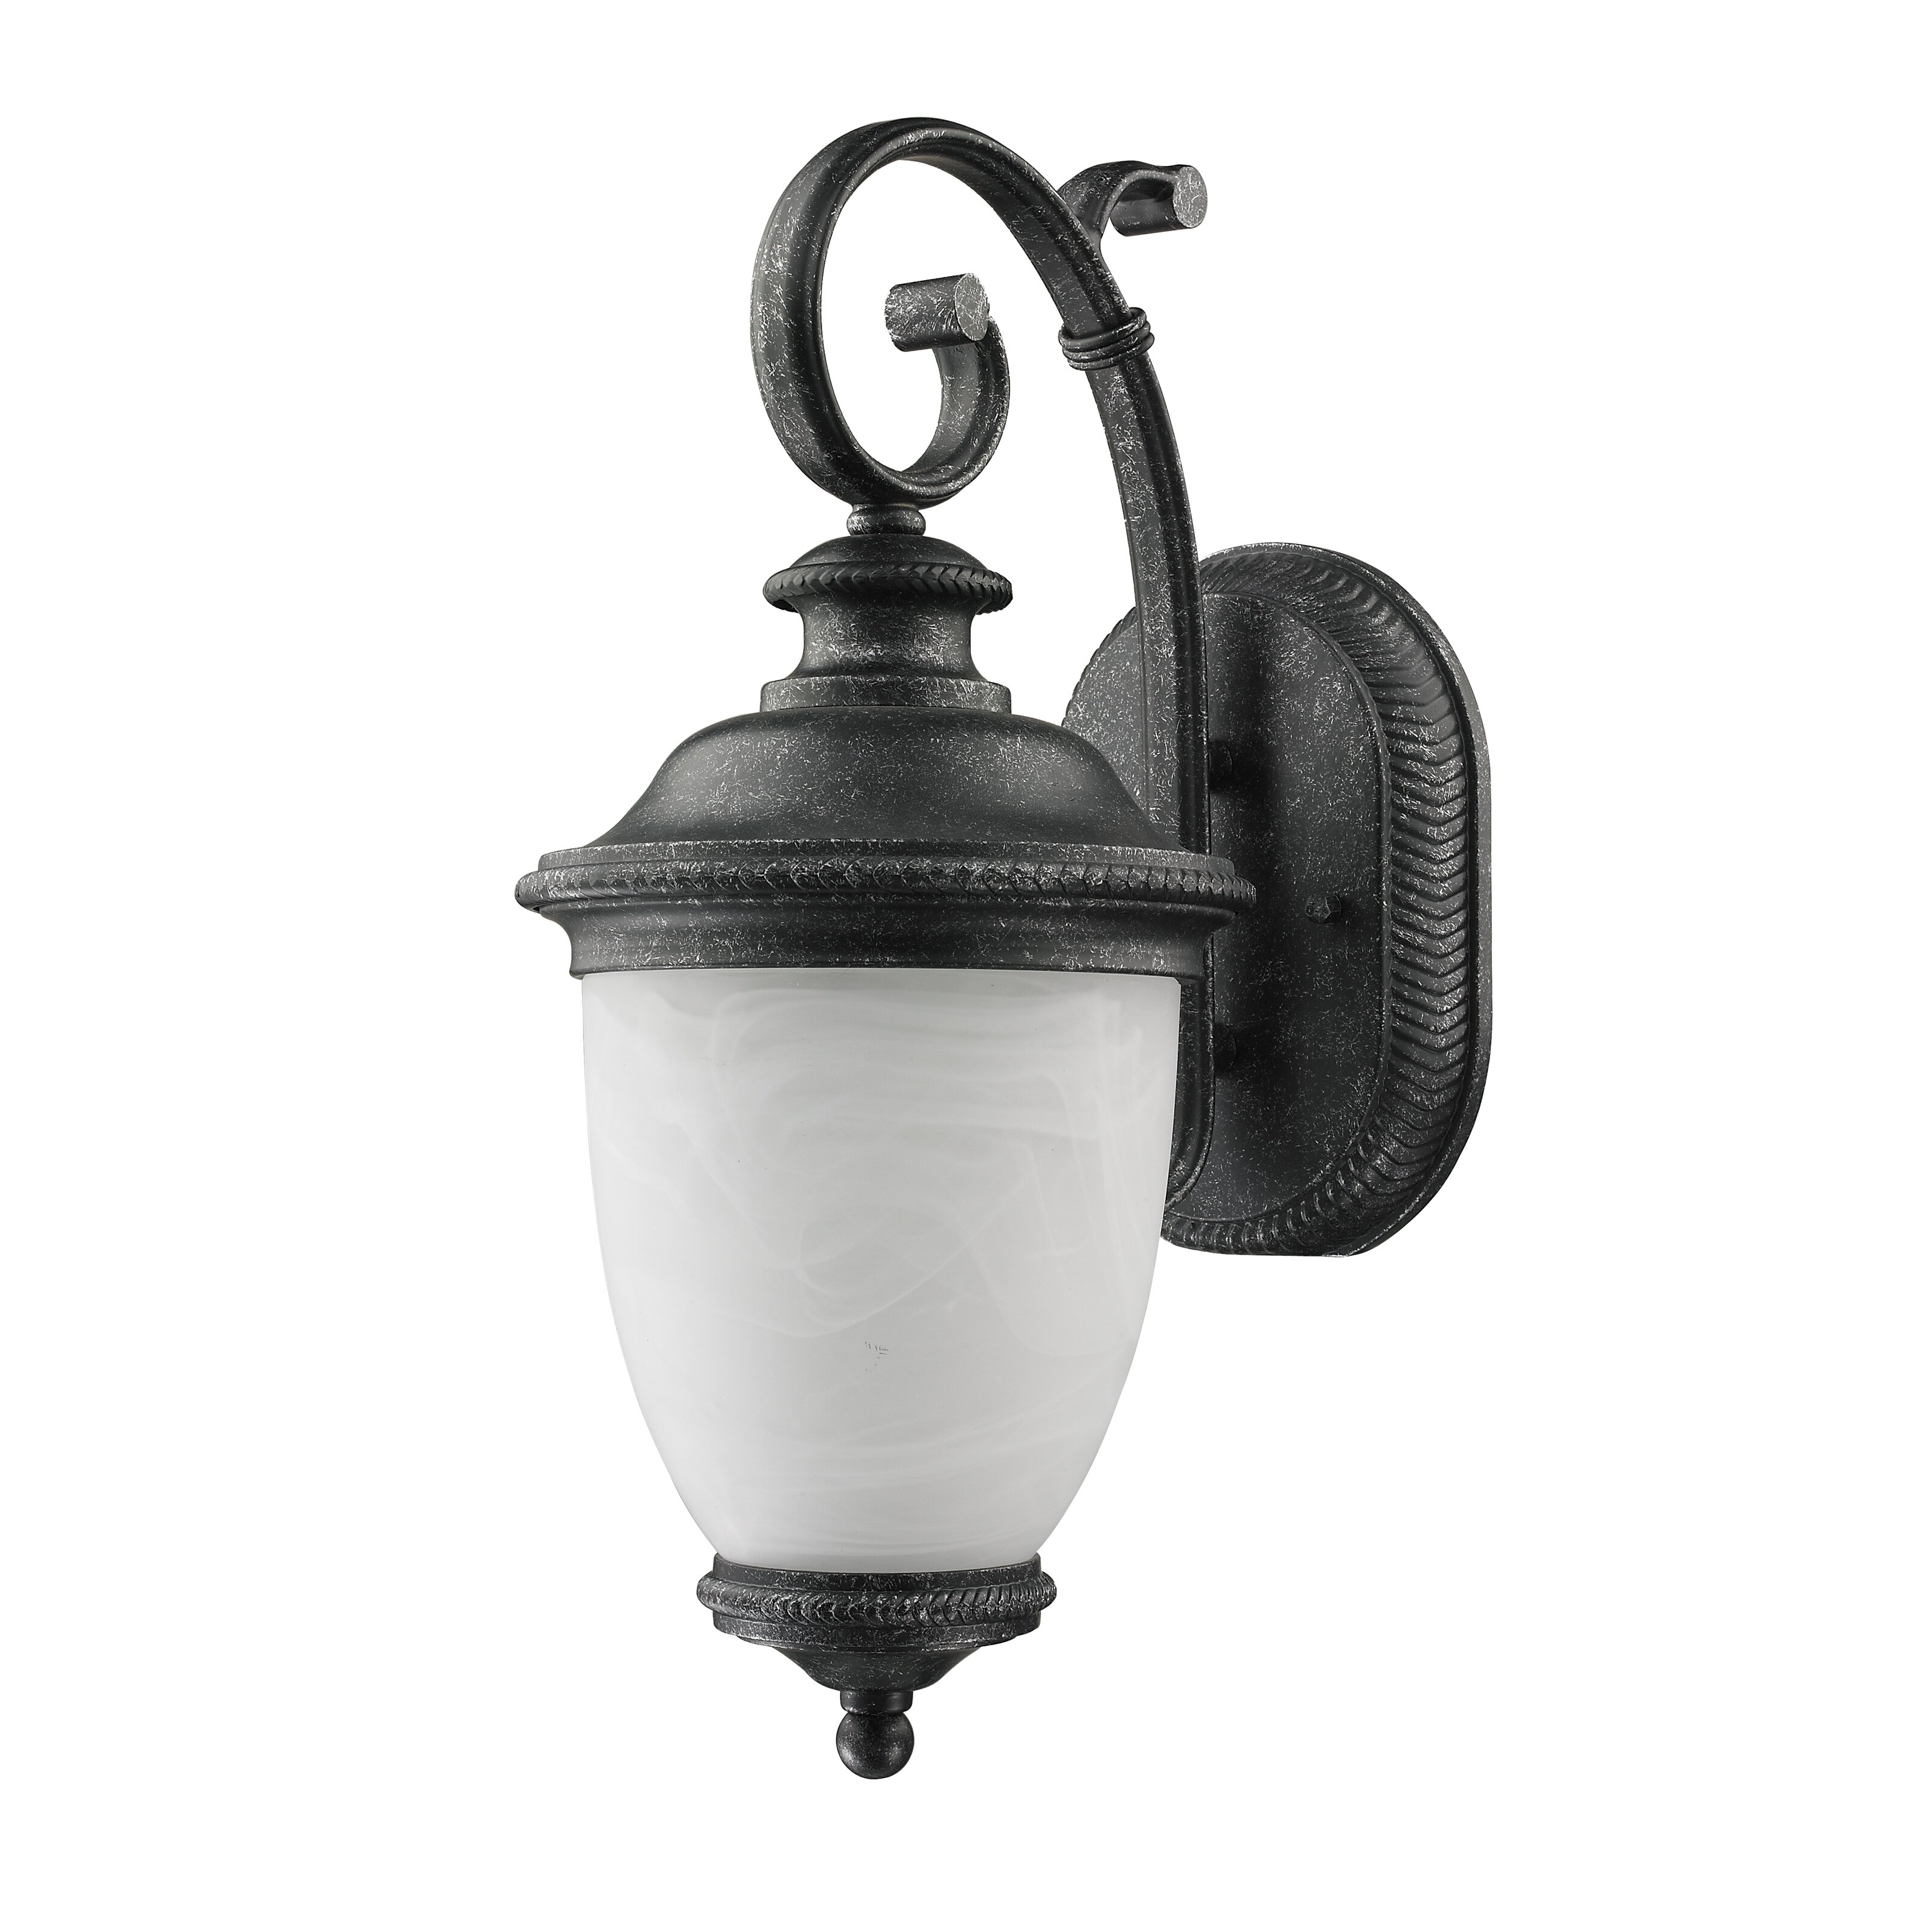 incandescent capitol inch amp light n lighting led stonington post coach lamps outdoor wide mn lamp